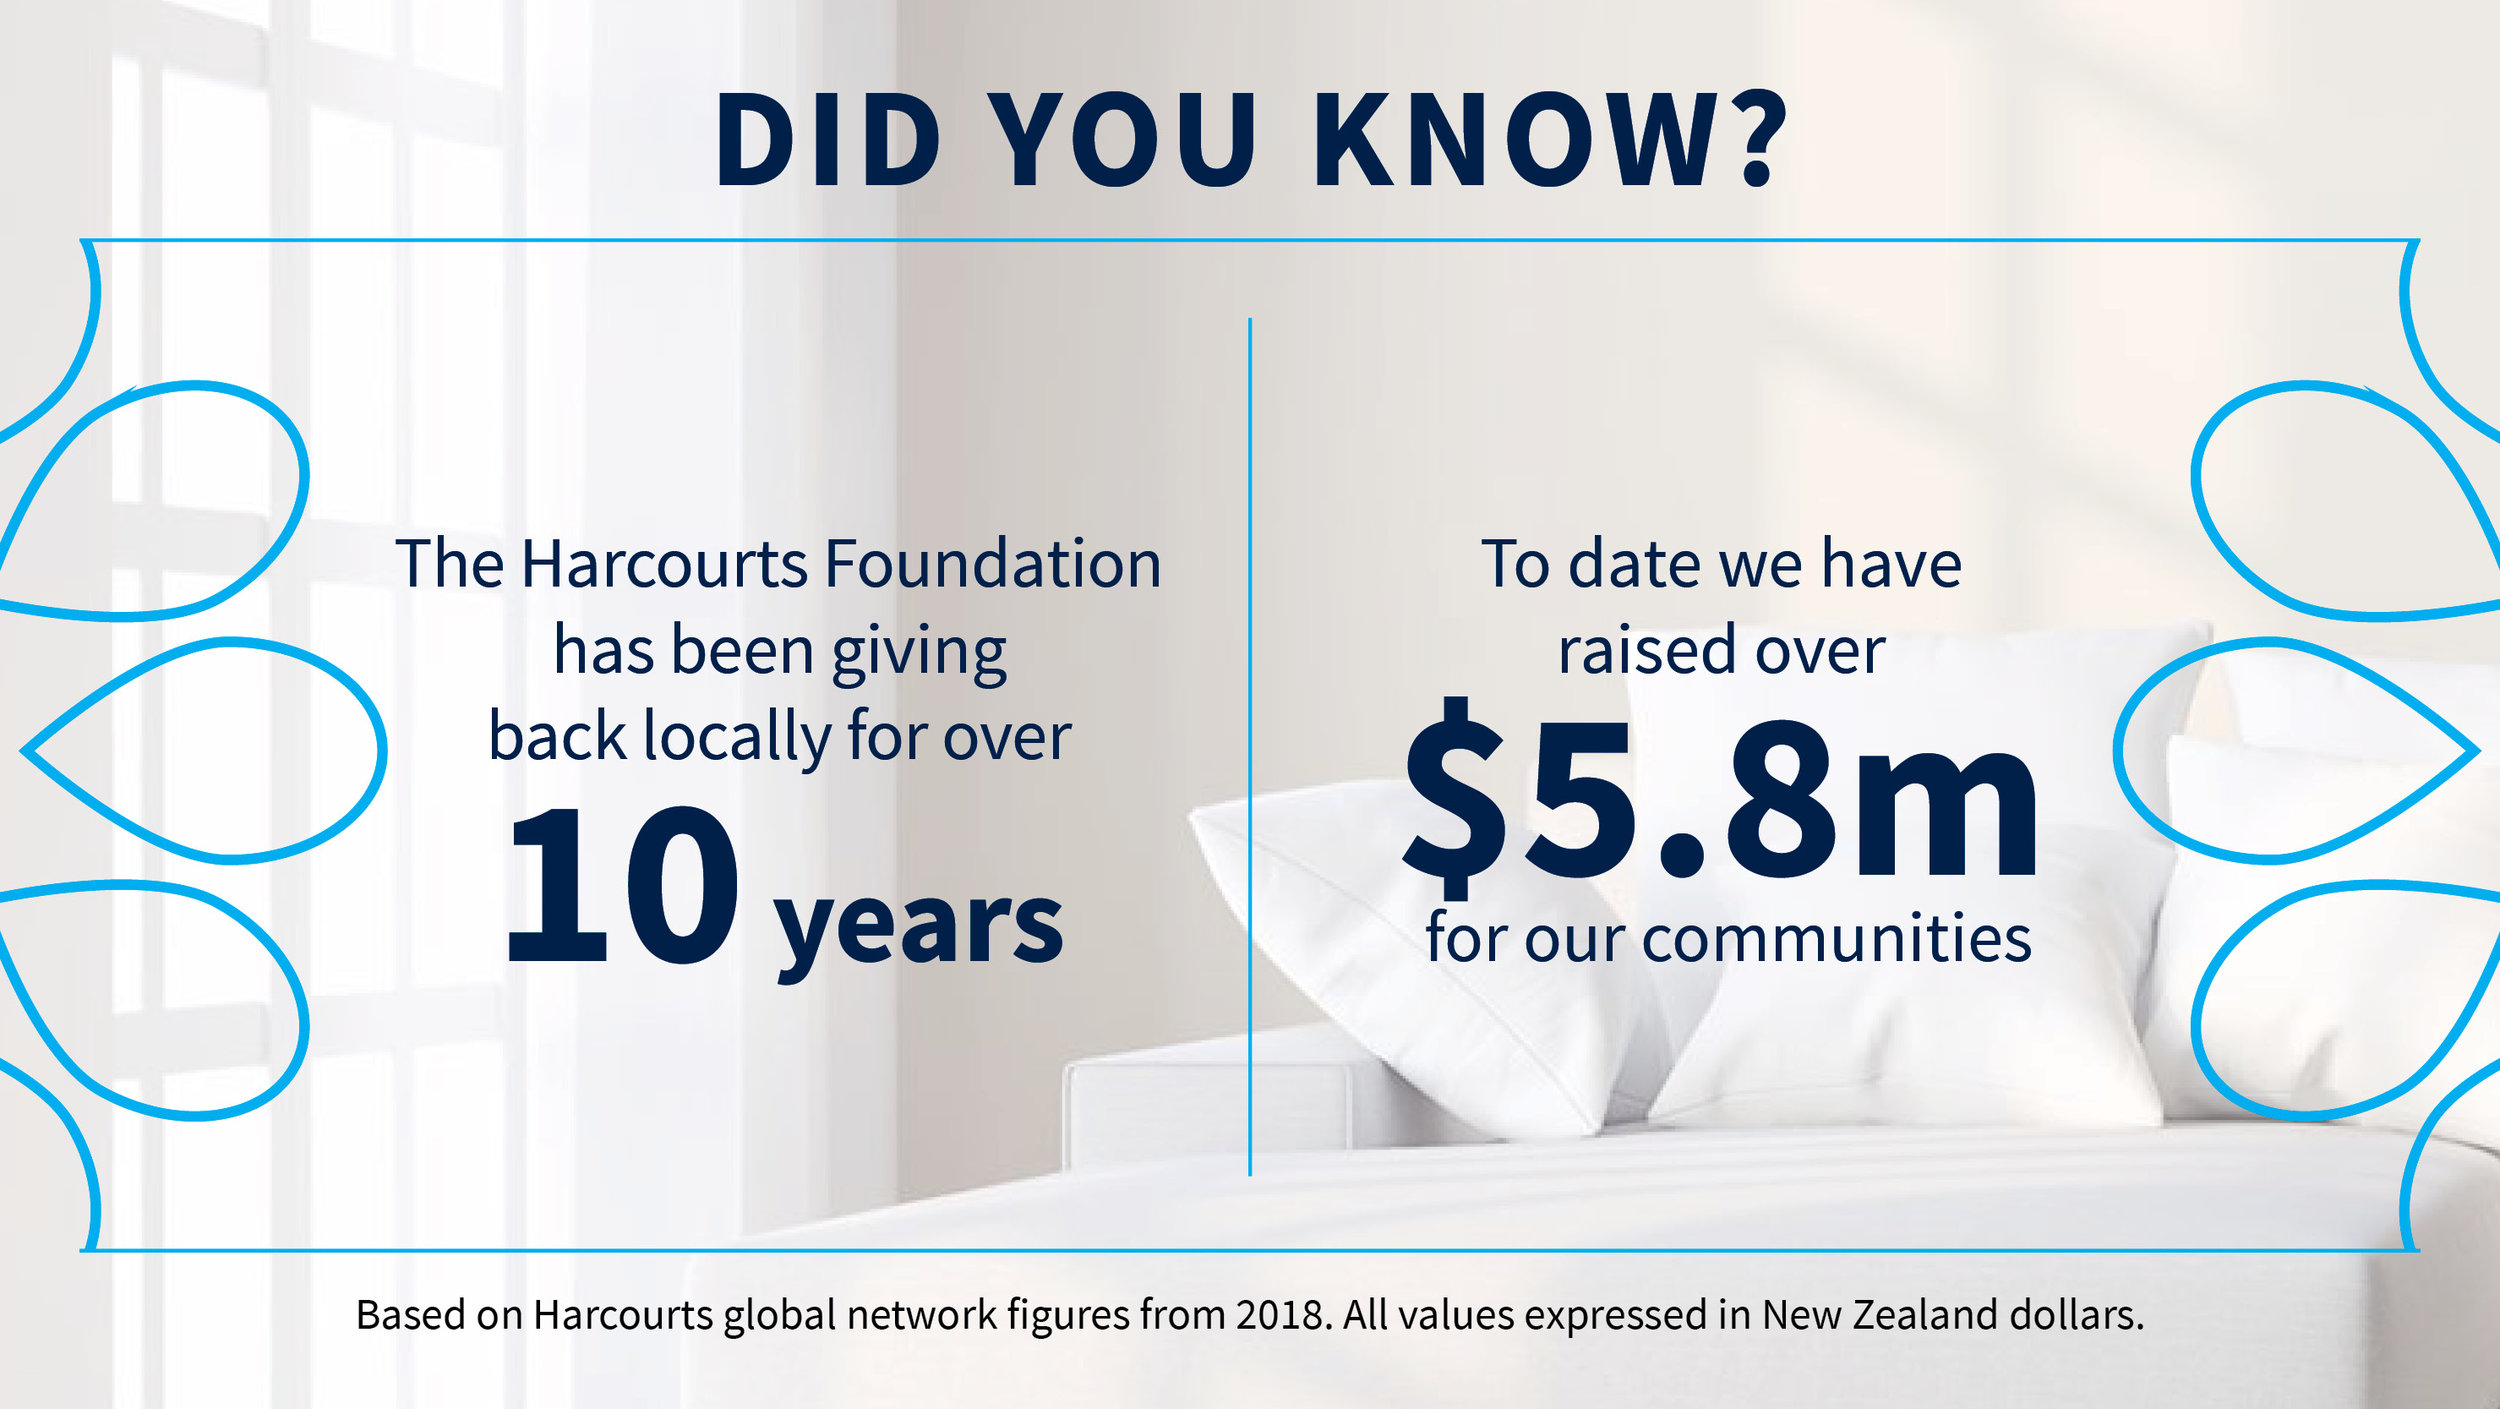 harcourts-facts-2019-ben-schembri-real-estate-boronia-4.jpg